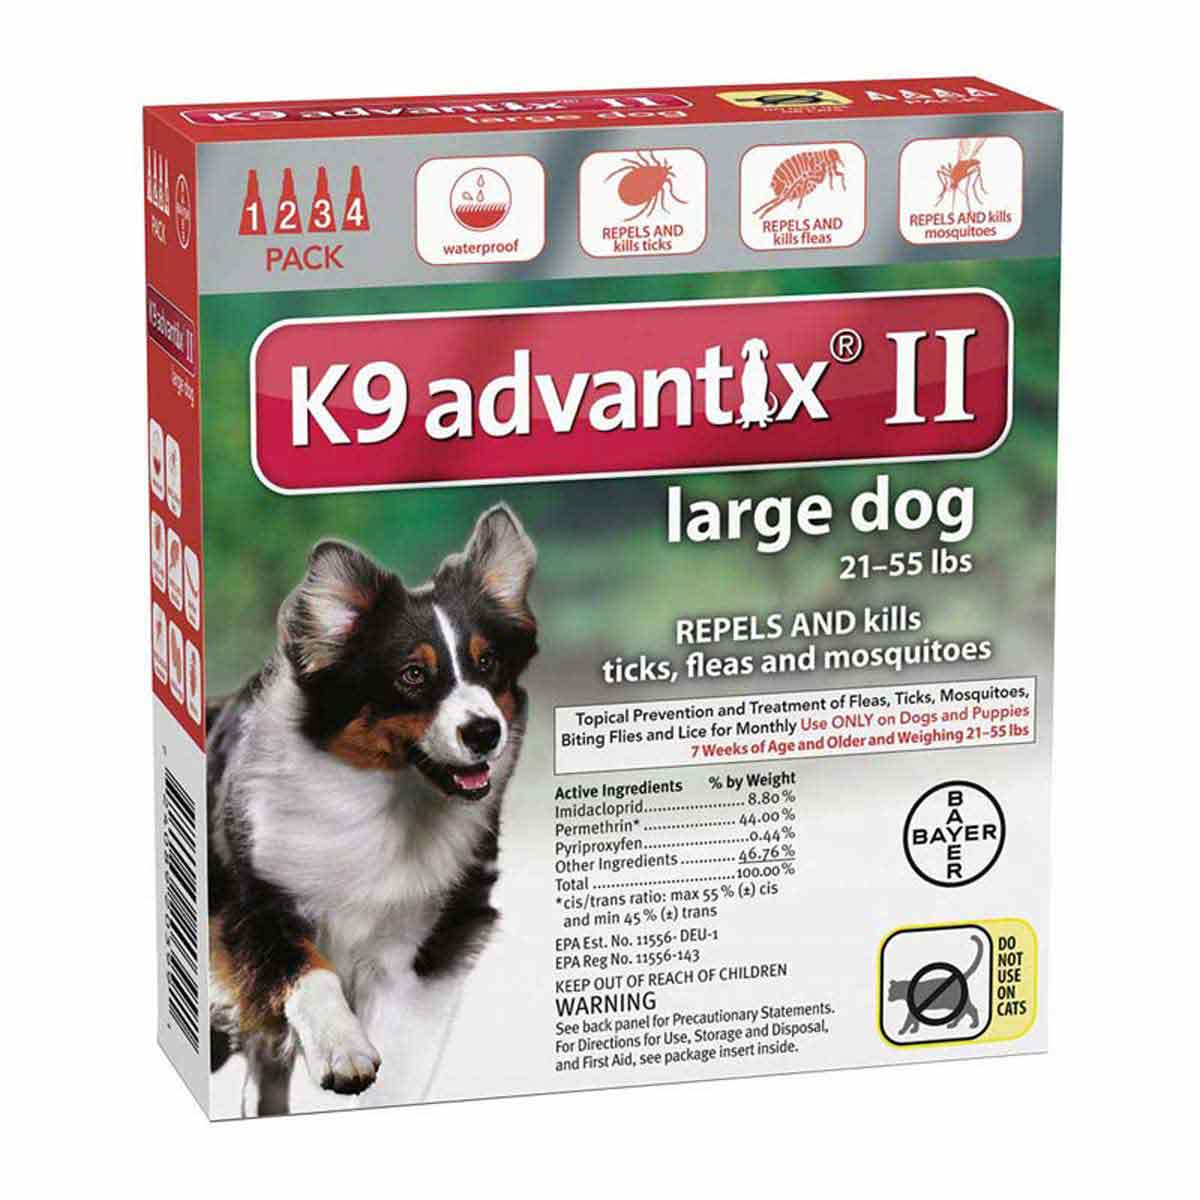 4 Pack K9 Advantix II Red Flea Treatment for Dogs sizes 21-55 lbs